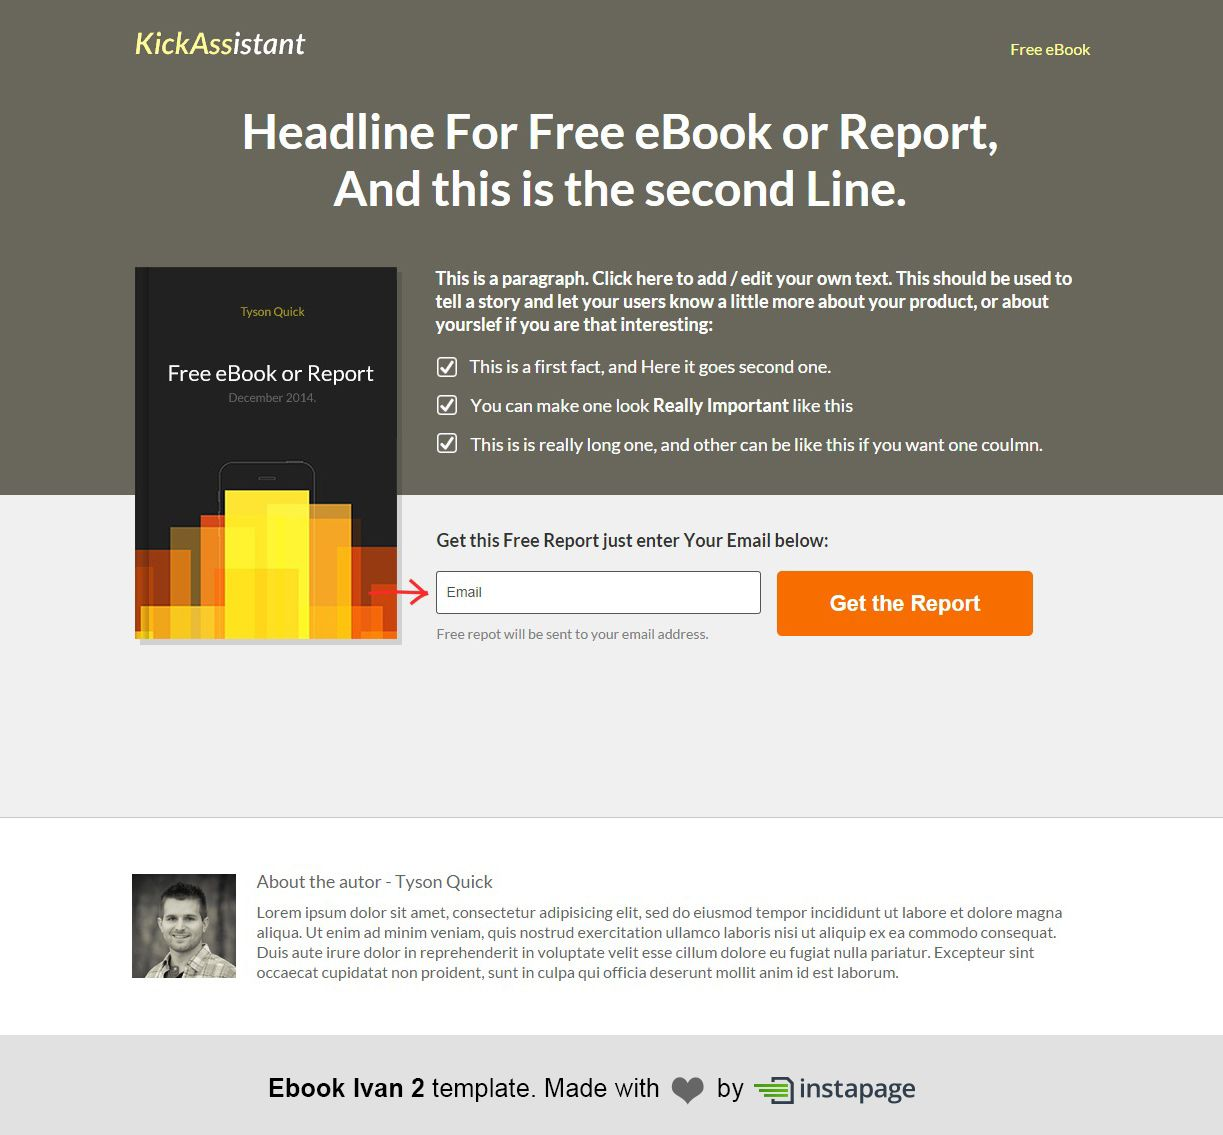 eBook Ivan 2 Template by Instapage   eBook Landing Pages   Pinterest